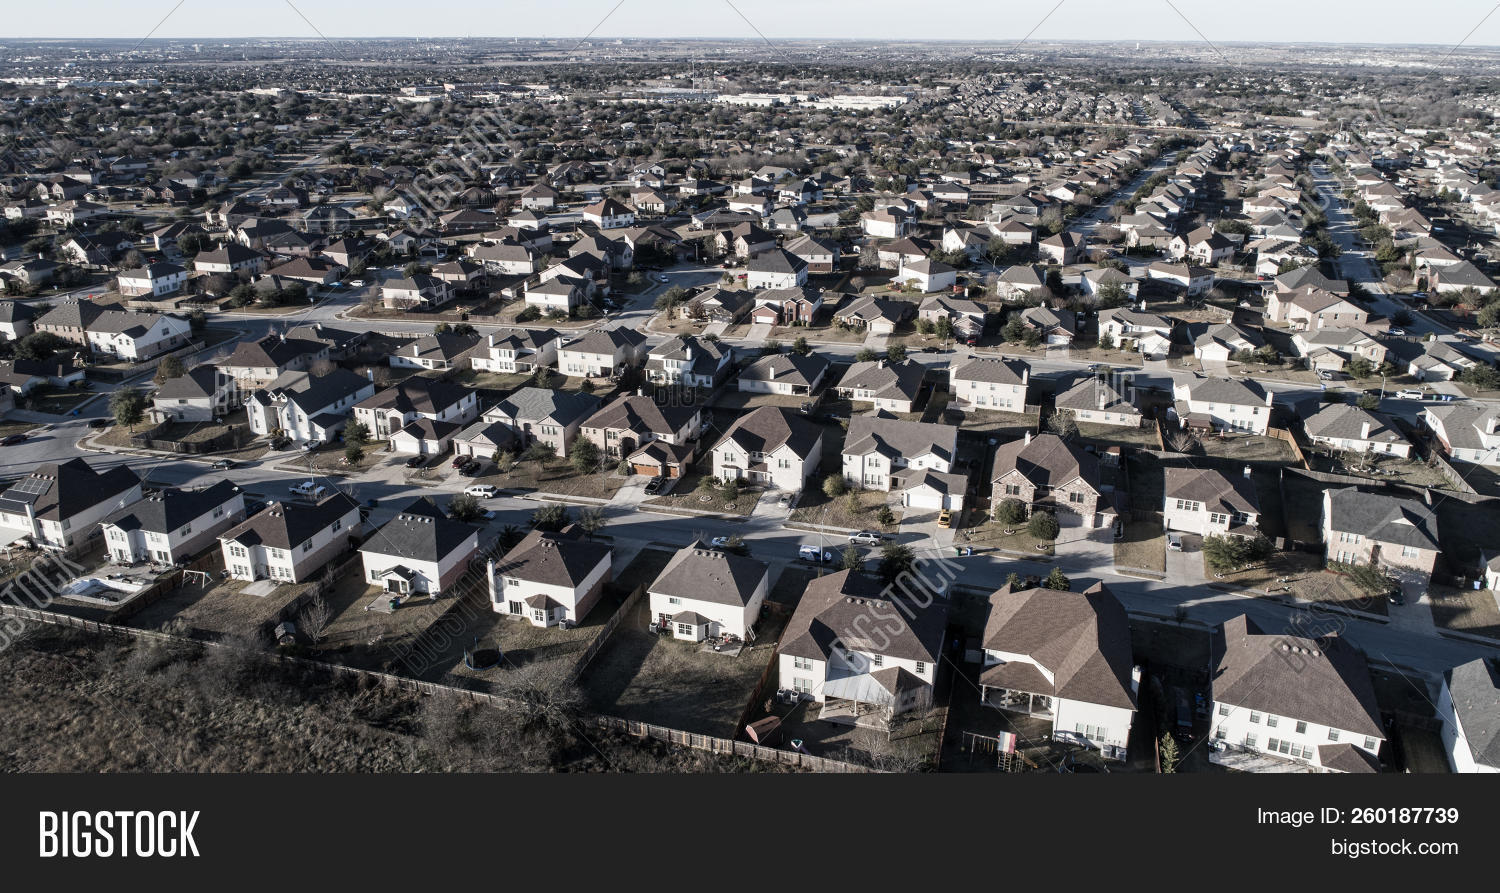 Round Rock Suburbia curved street on neighborhood layout Urban development aerial drone view high above Suburb neighborhood community homes and houses in a huge modern development in Austin , Texas , USA architecture